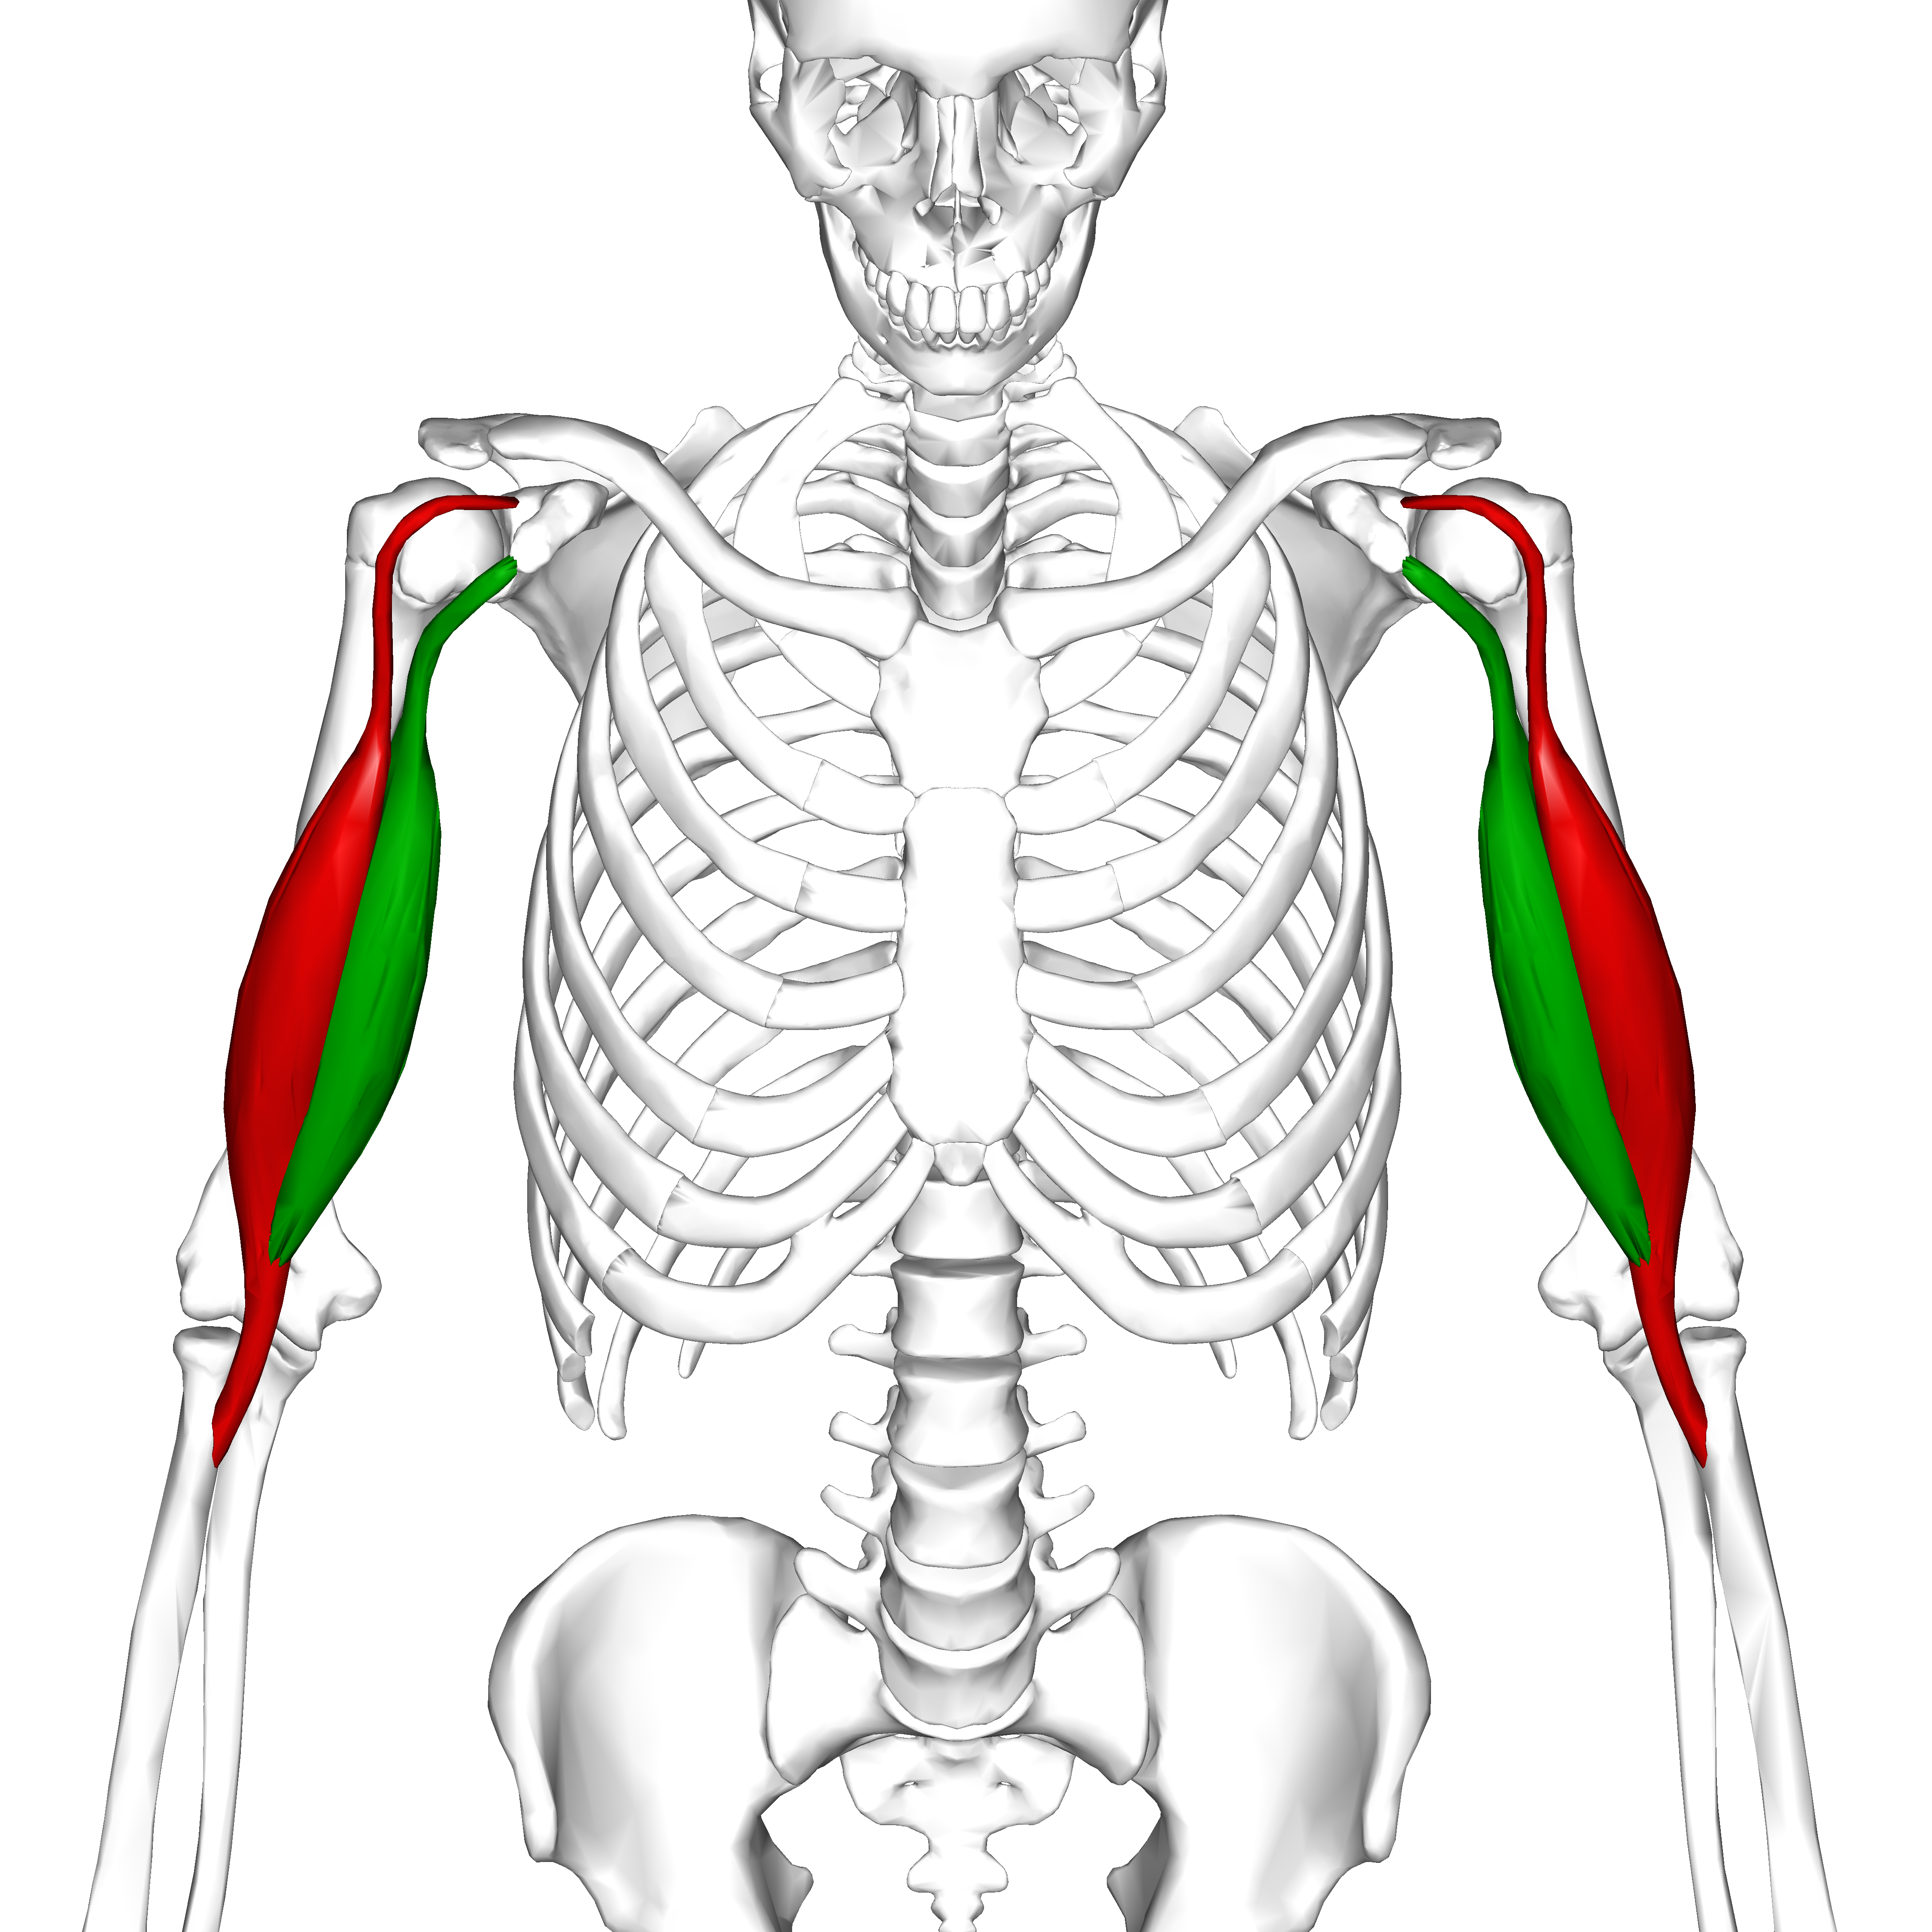 File:Biceps brachii muscle06.png - Wikimedia Commons